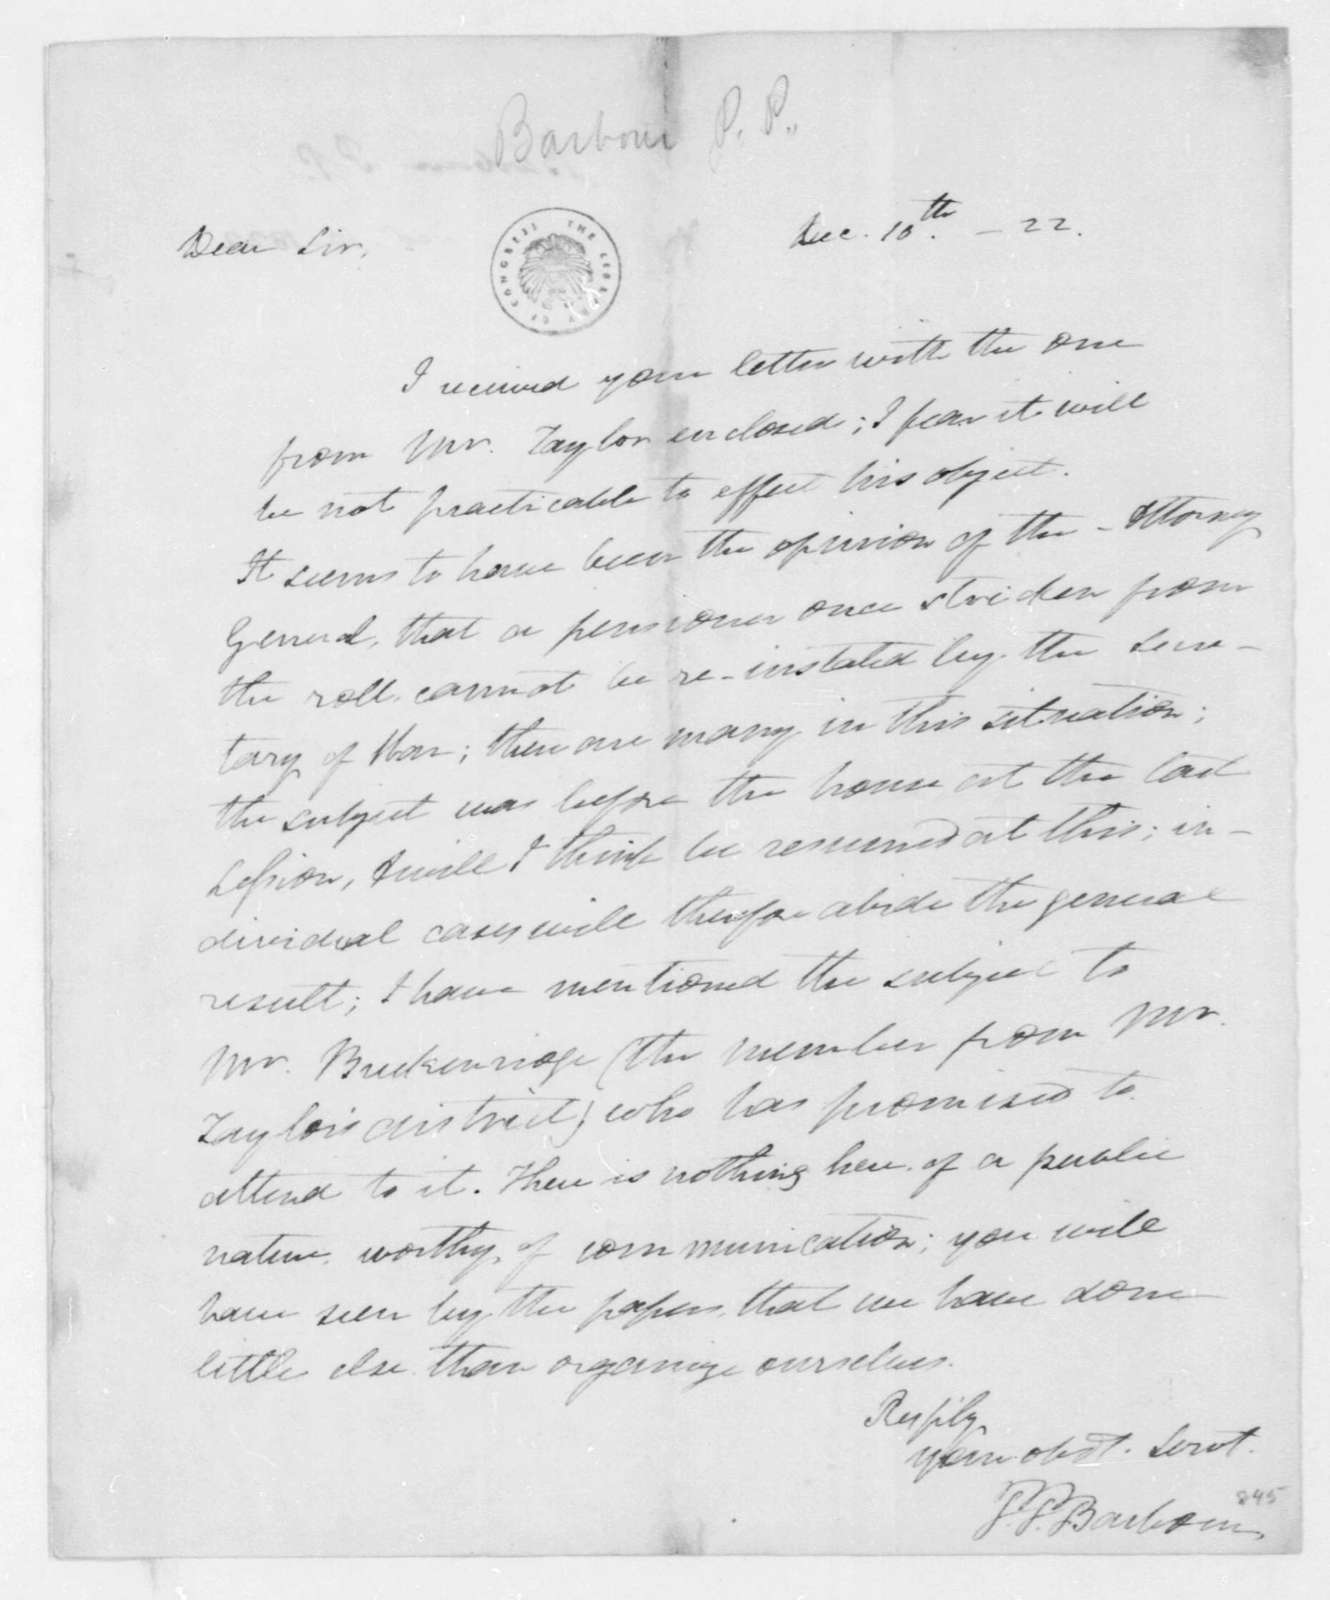 P. P. Barbour to James Madison, December 10, 1822.